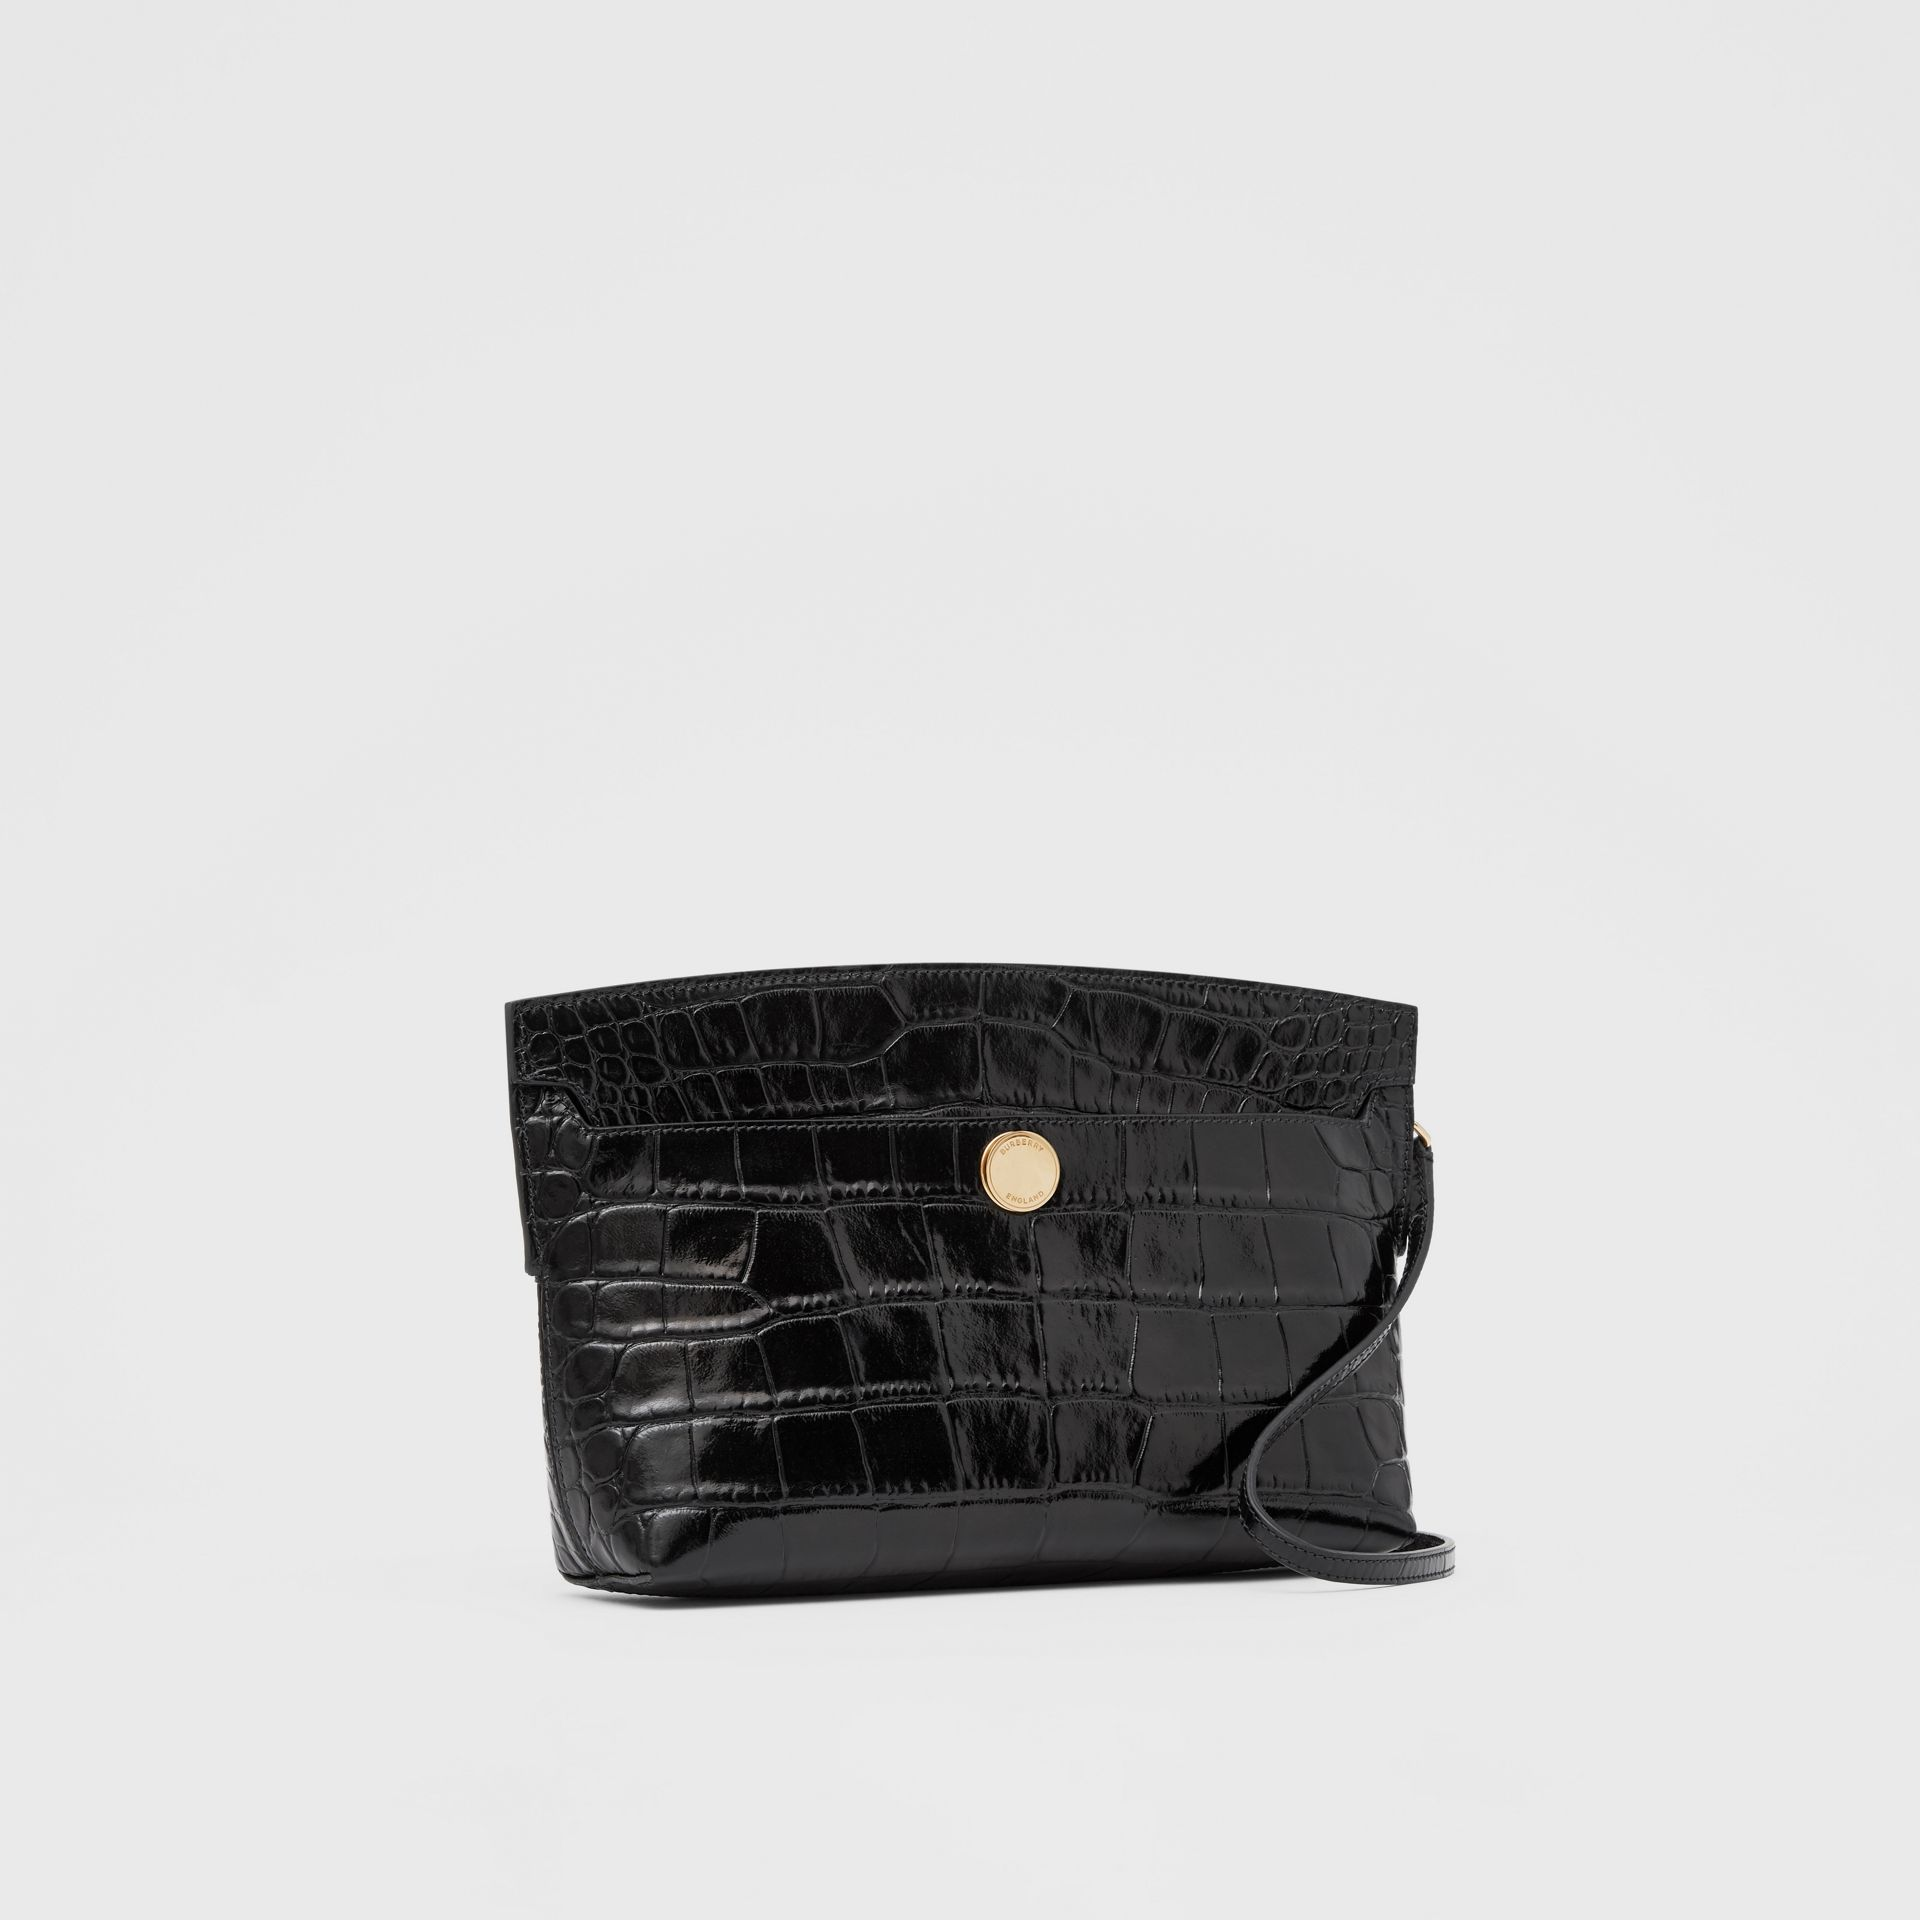 Embossed Leather Society Clutch in Black - Women | Burberry - gallery image 6